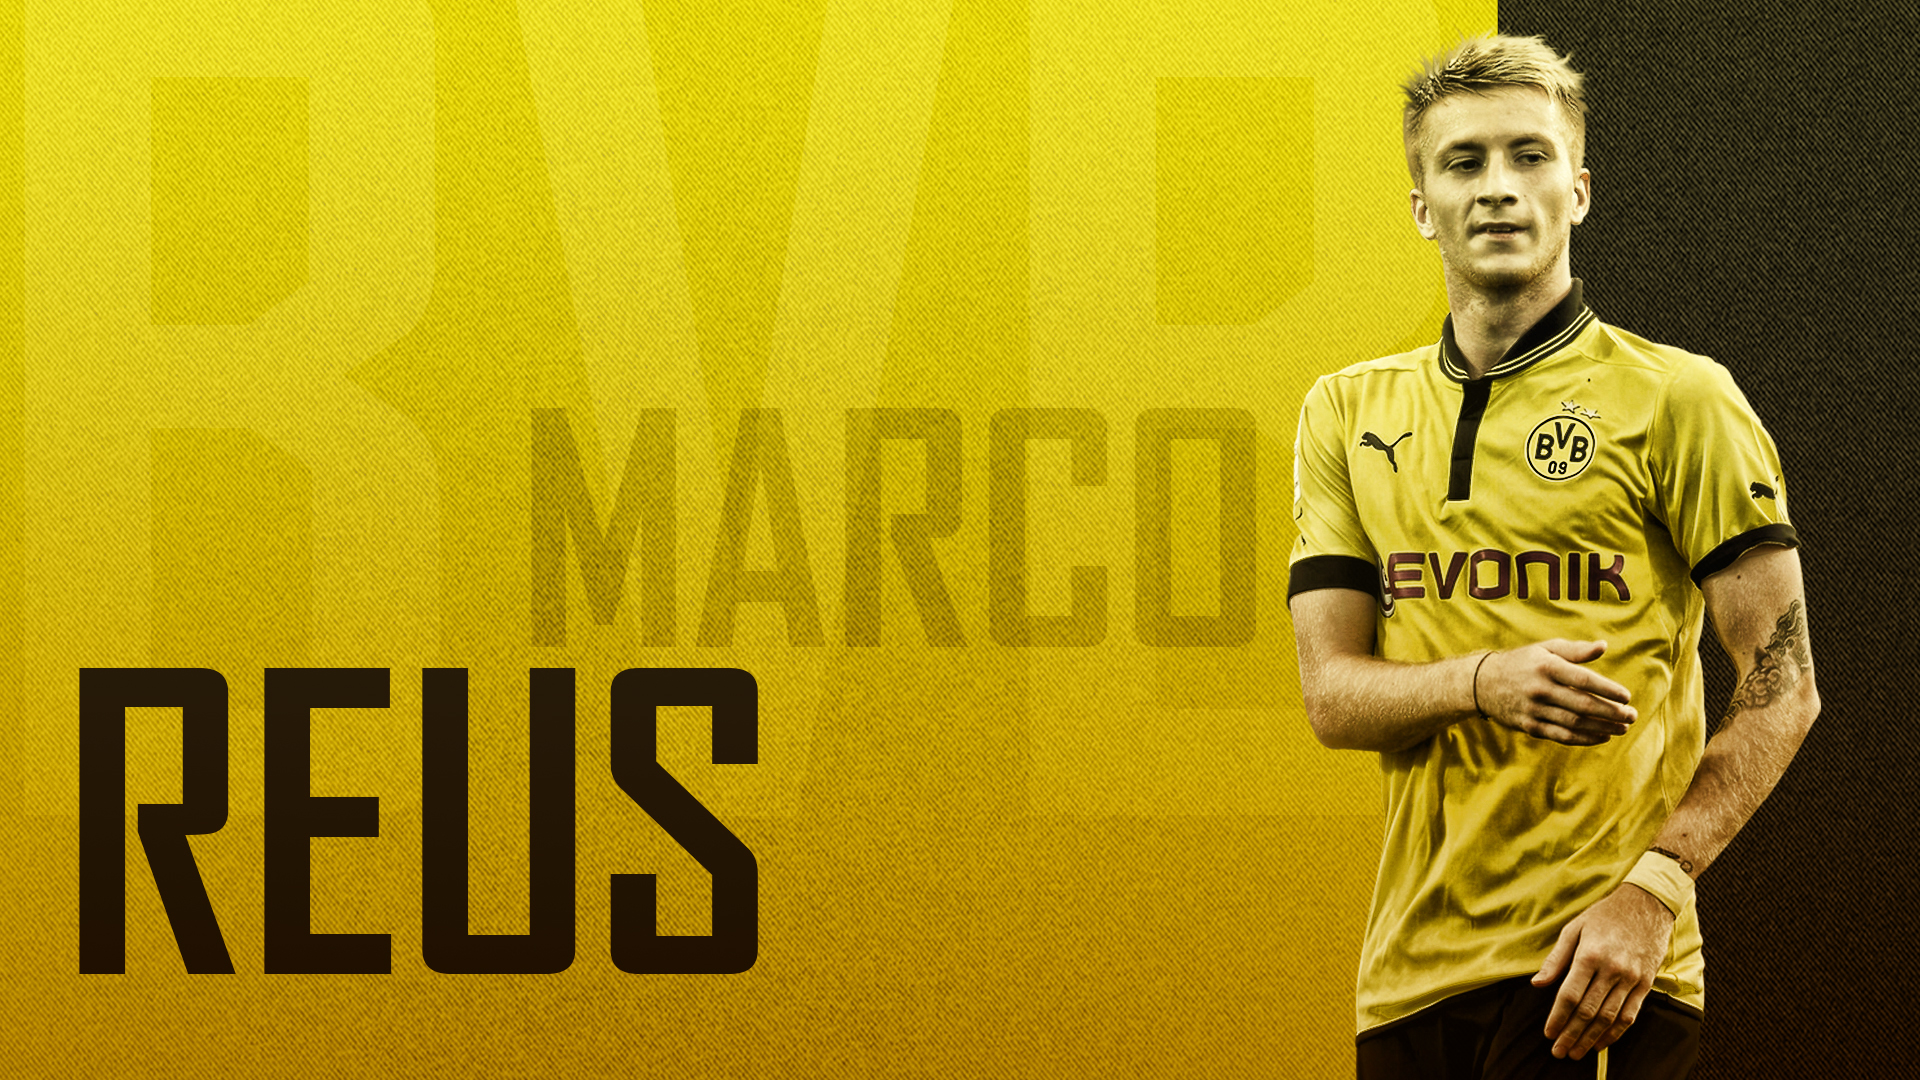 Marco Reus Wallpaper by Kerimov23 on DeviantArt